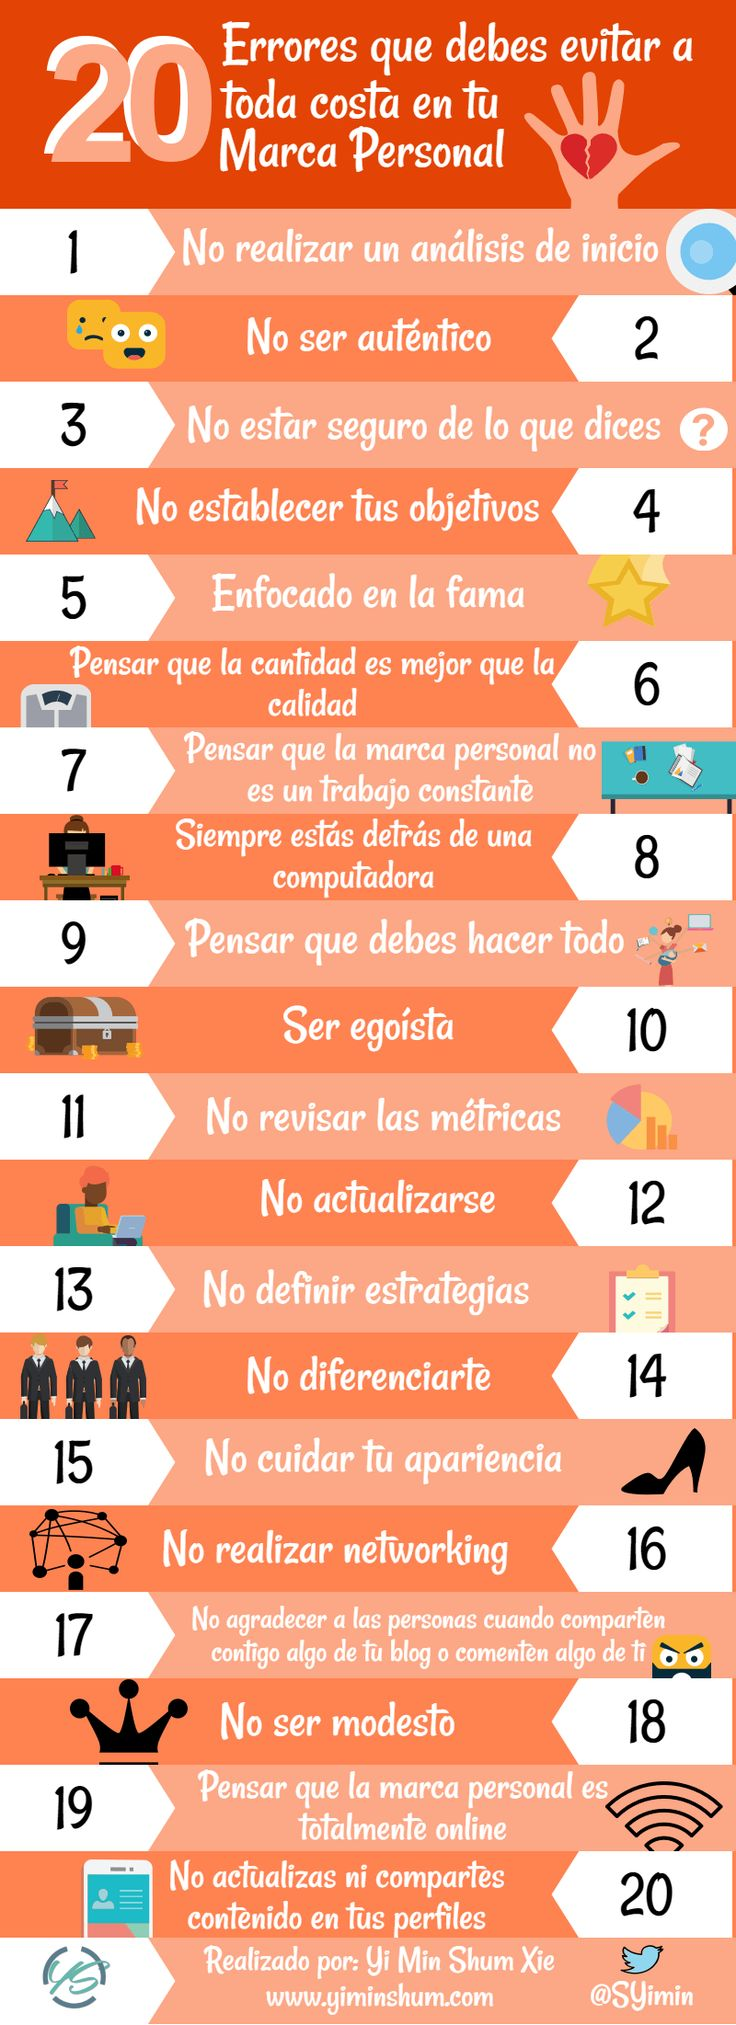 20 errores de tu Marca Personal #infografia #infographic #marketing   TICs y Formación